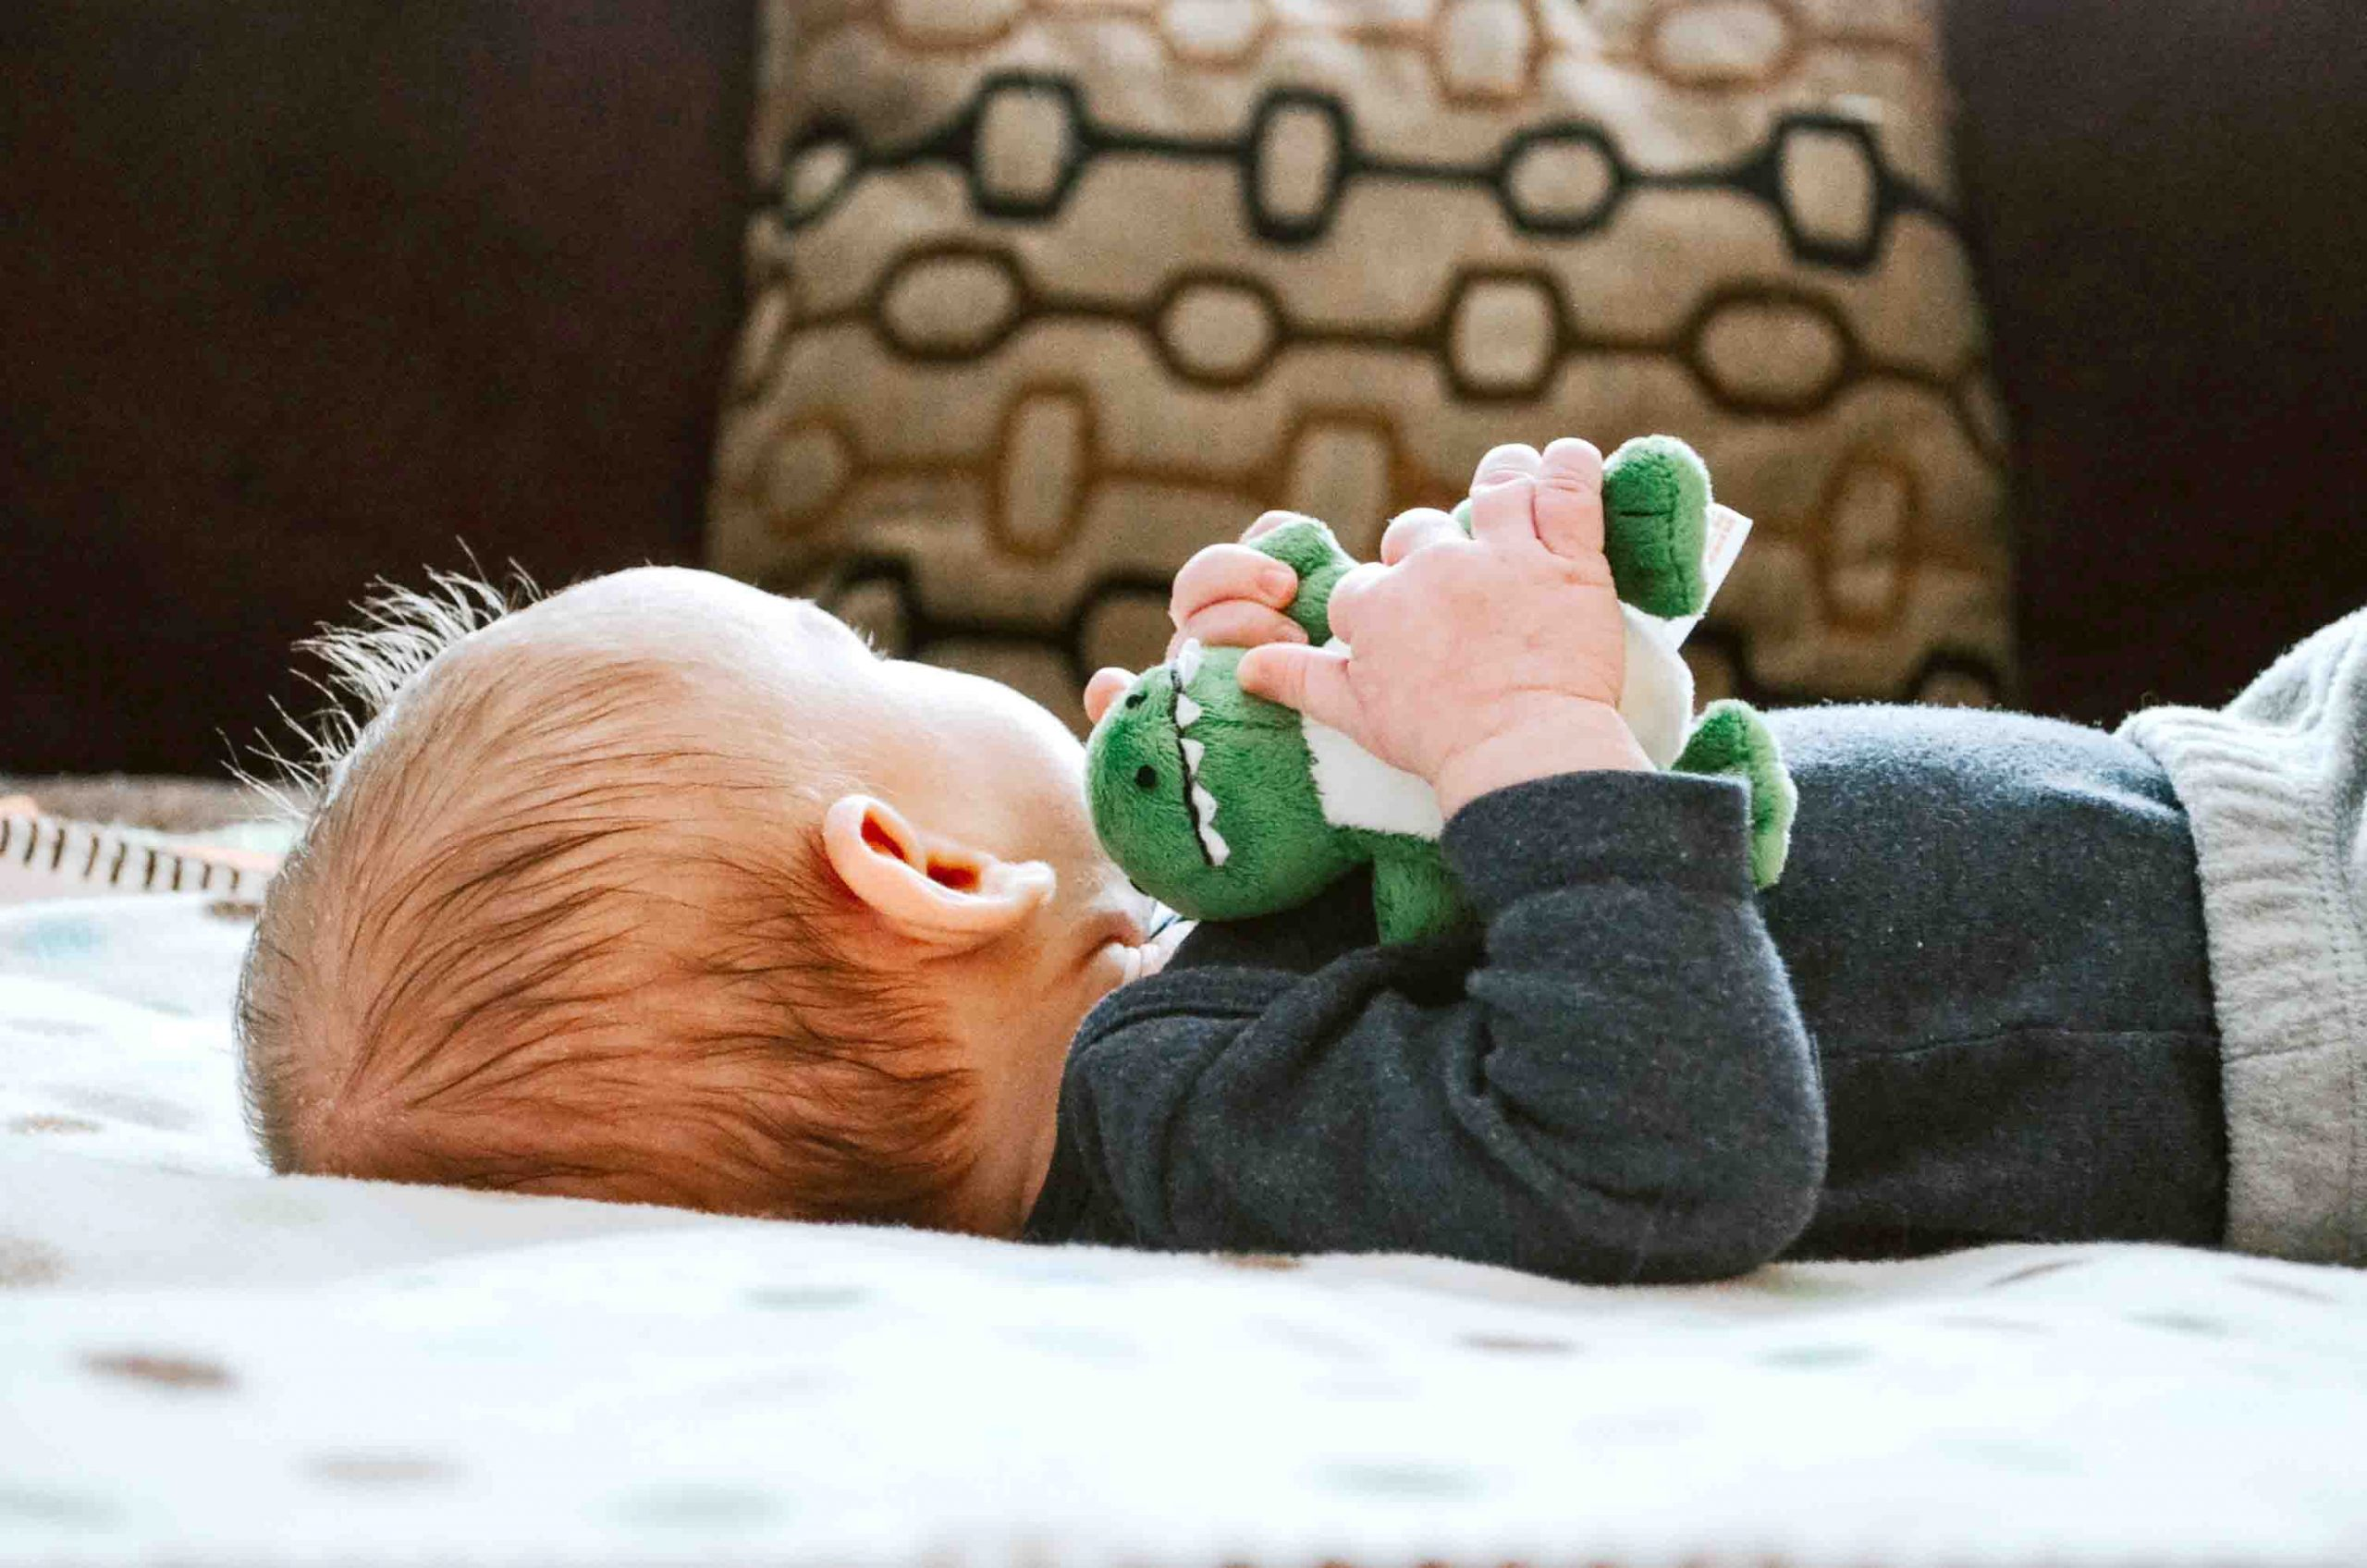 Newborn Baby Needs: What Does a Baby Need at the Very Beginning?